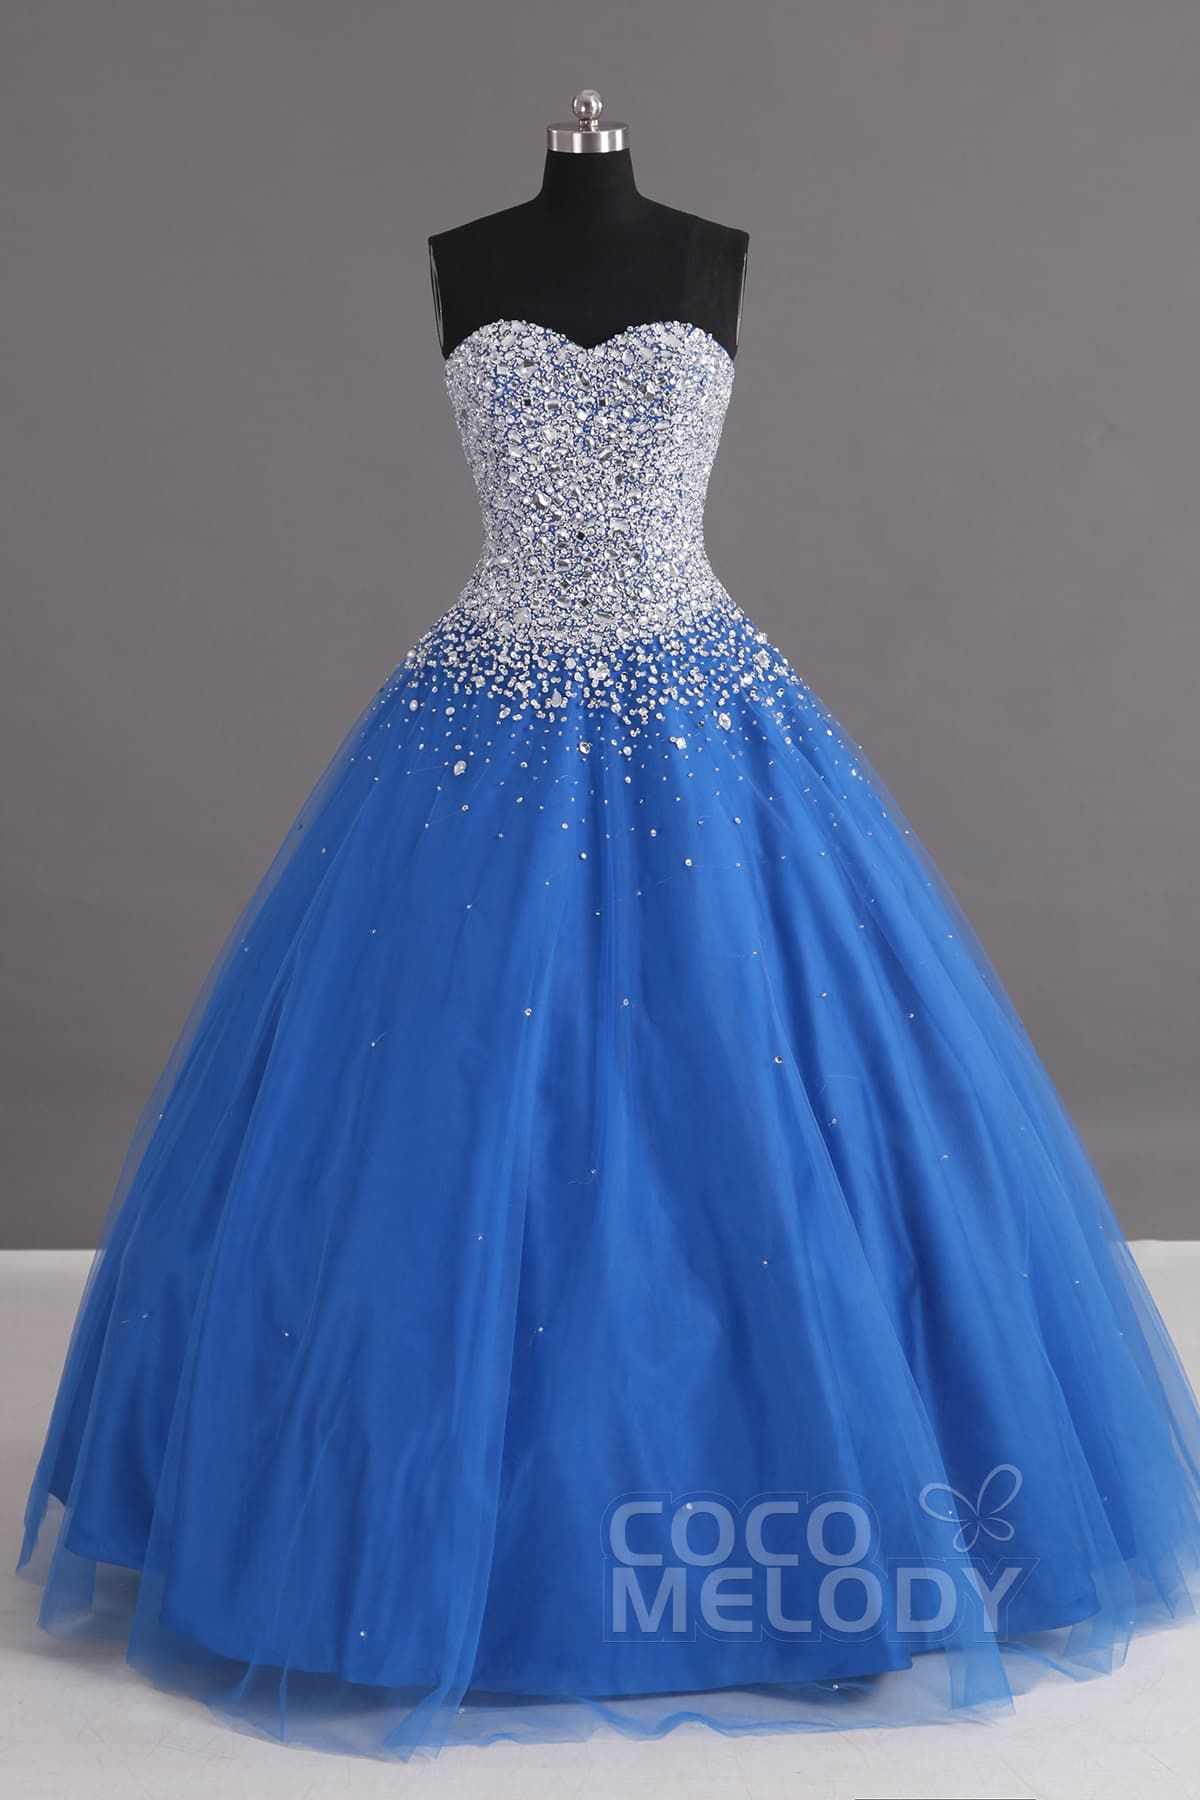 Charming+Ball+Gown+Sweetheart+Floor+Length+Tulle+Lace-up+Corset+Quinceanera+ Dress+with+Crystals+COLF1400F 501b416dc5d3